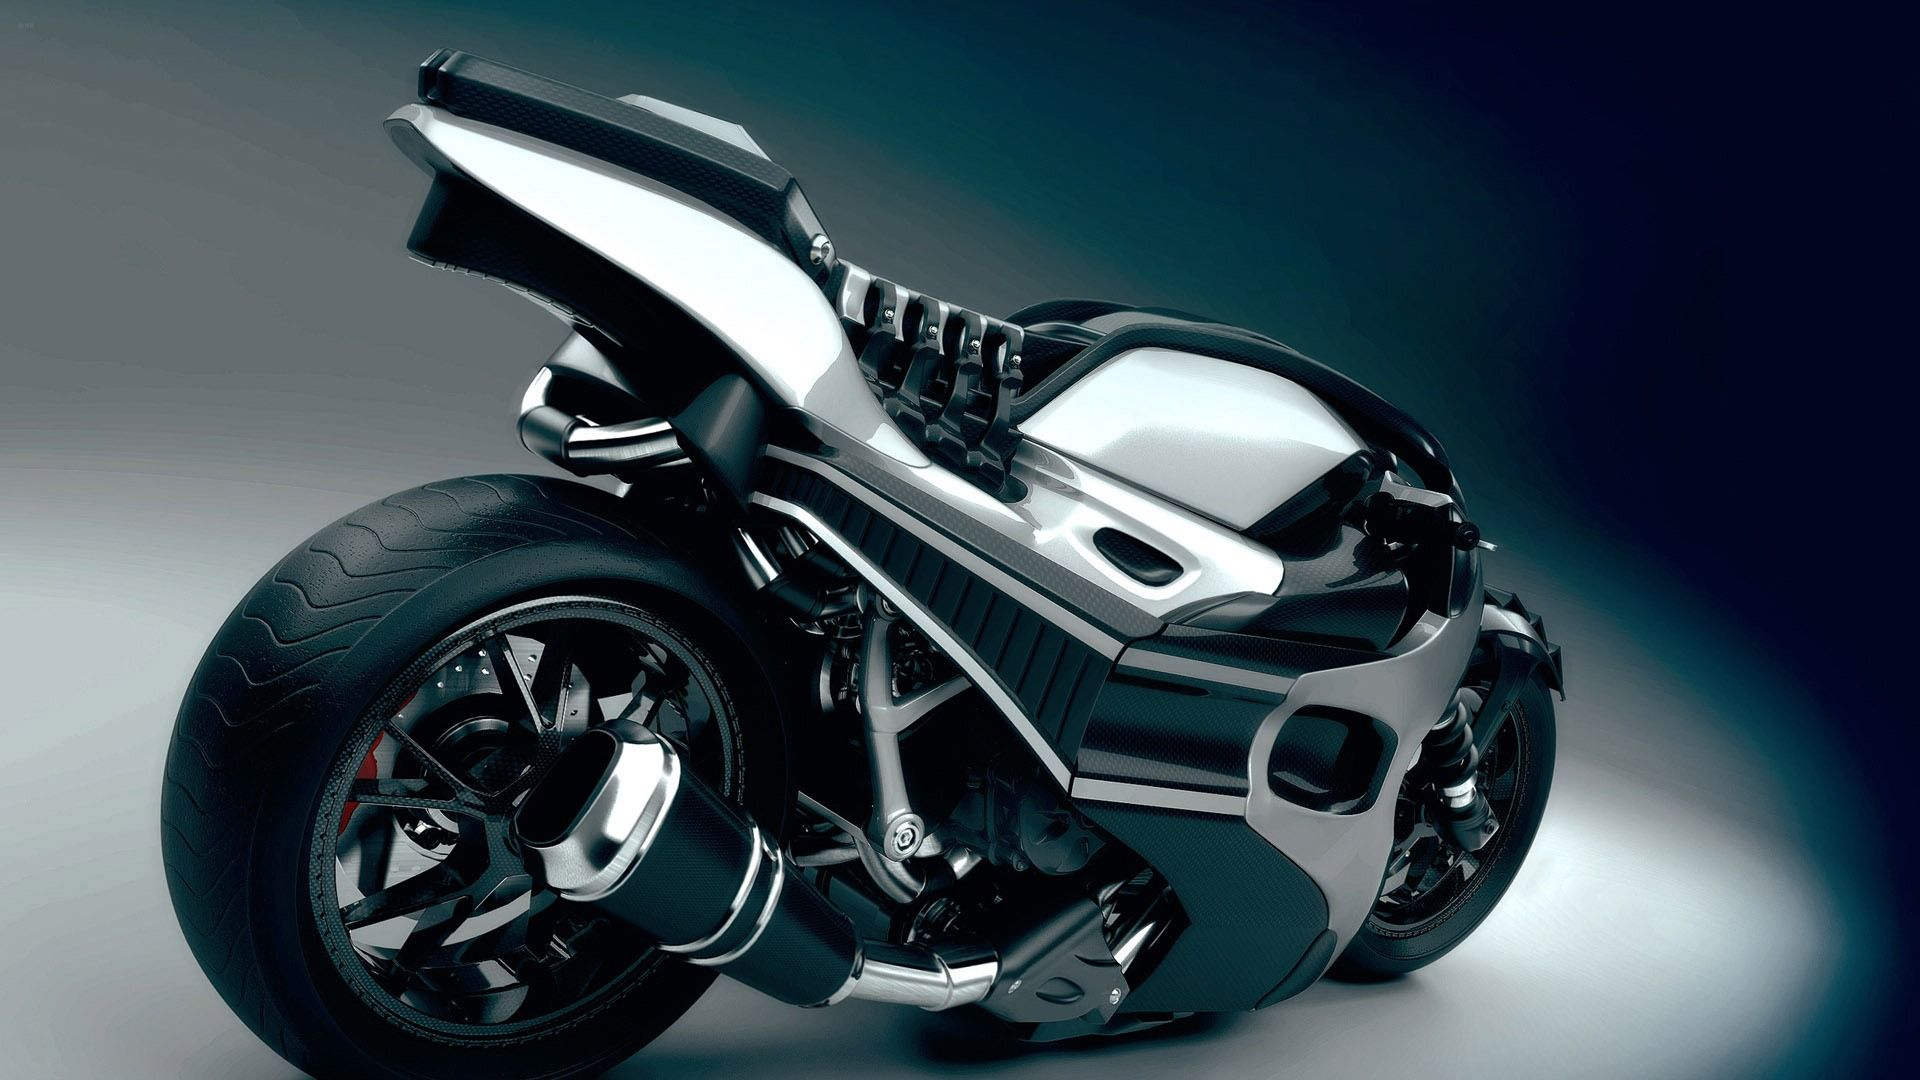 cool motorcycle designs background hd wallpapers amagico